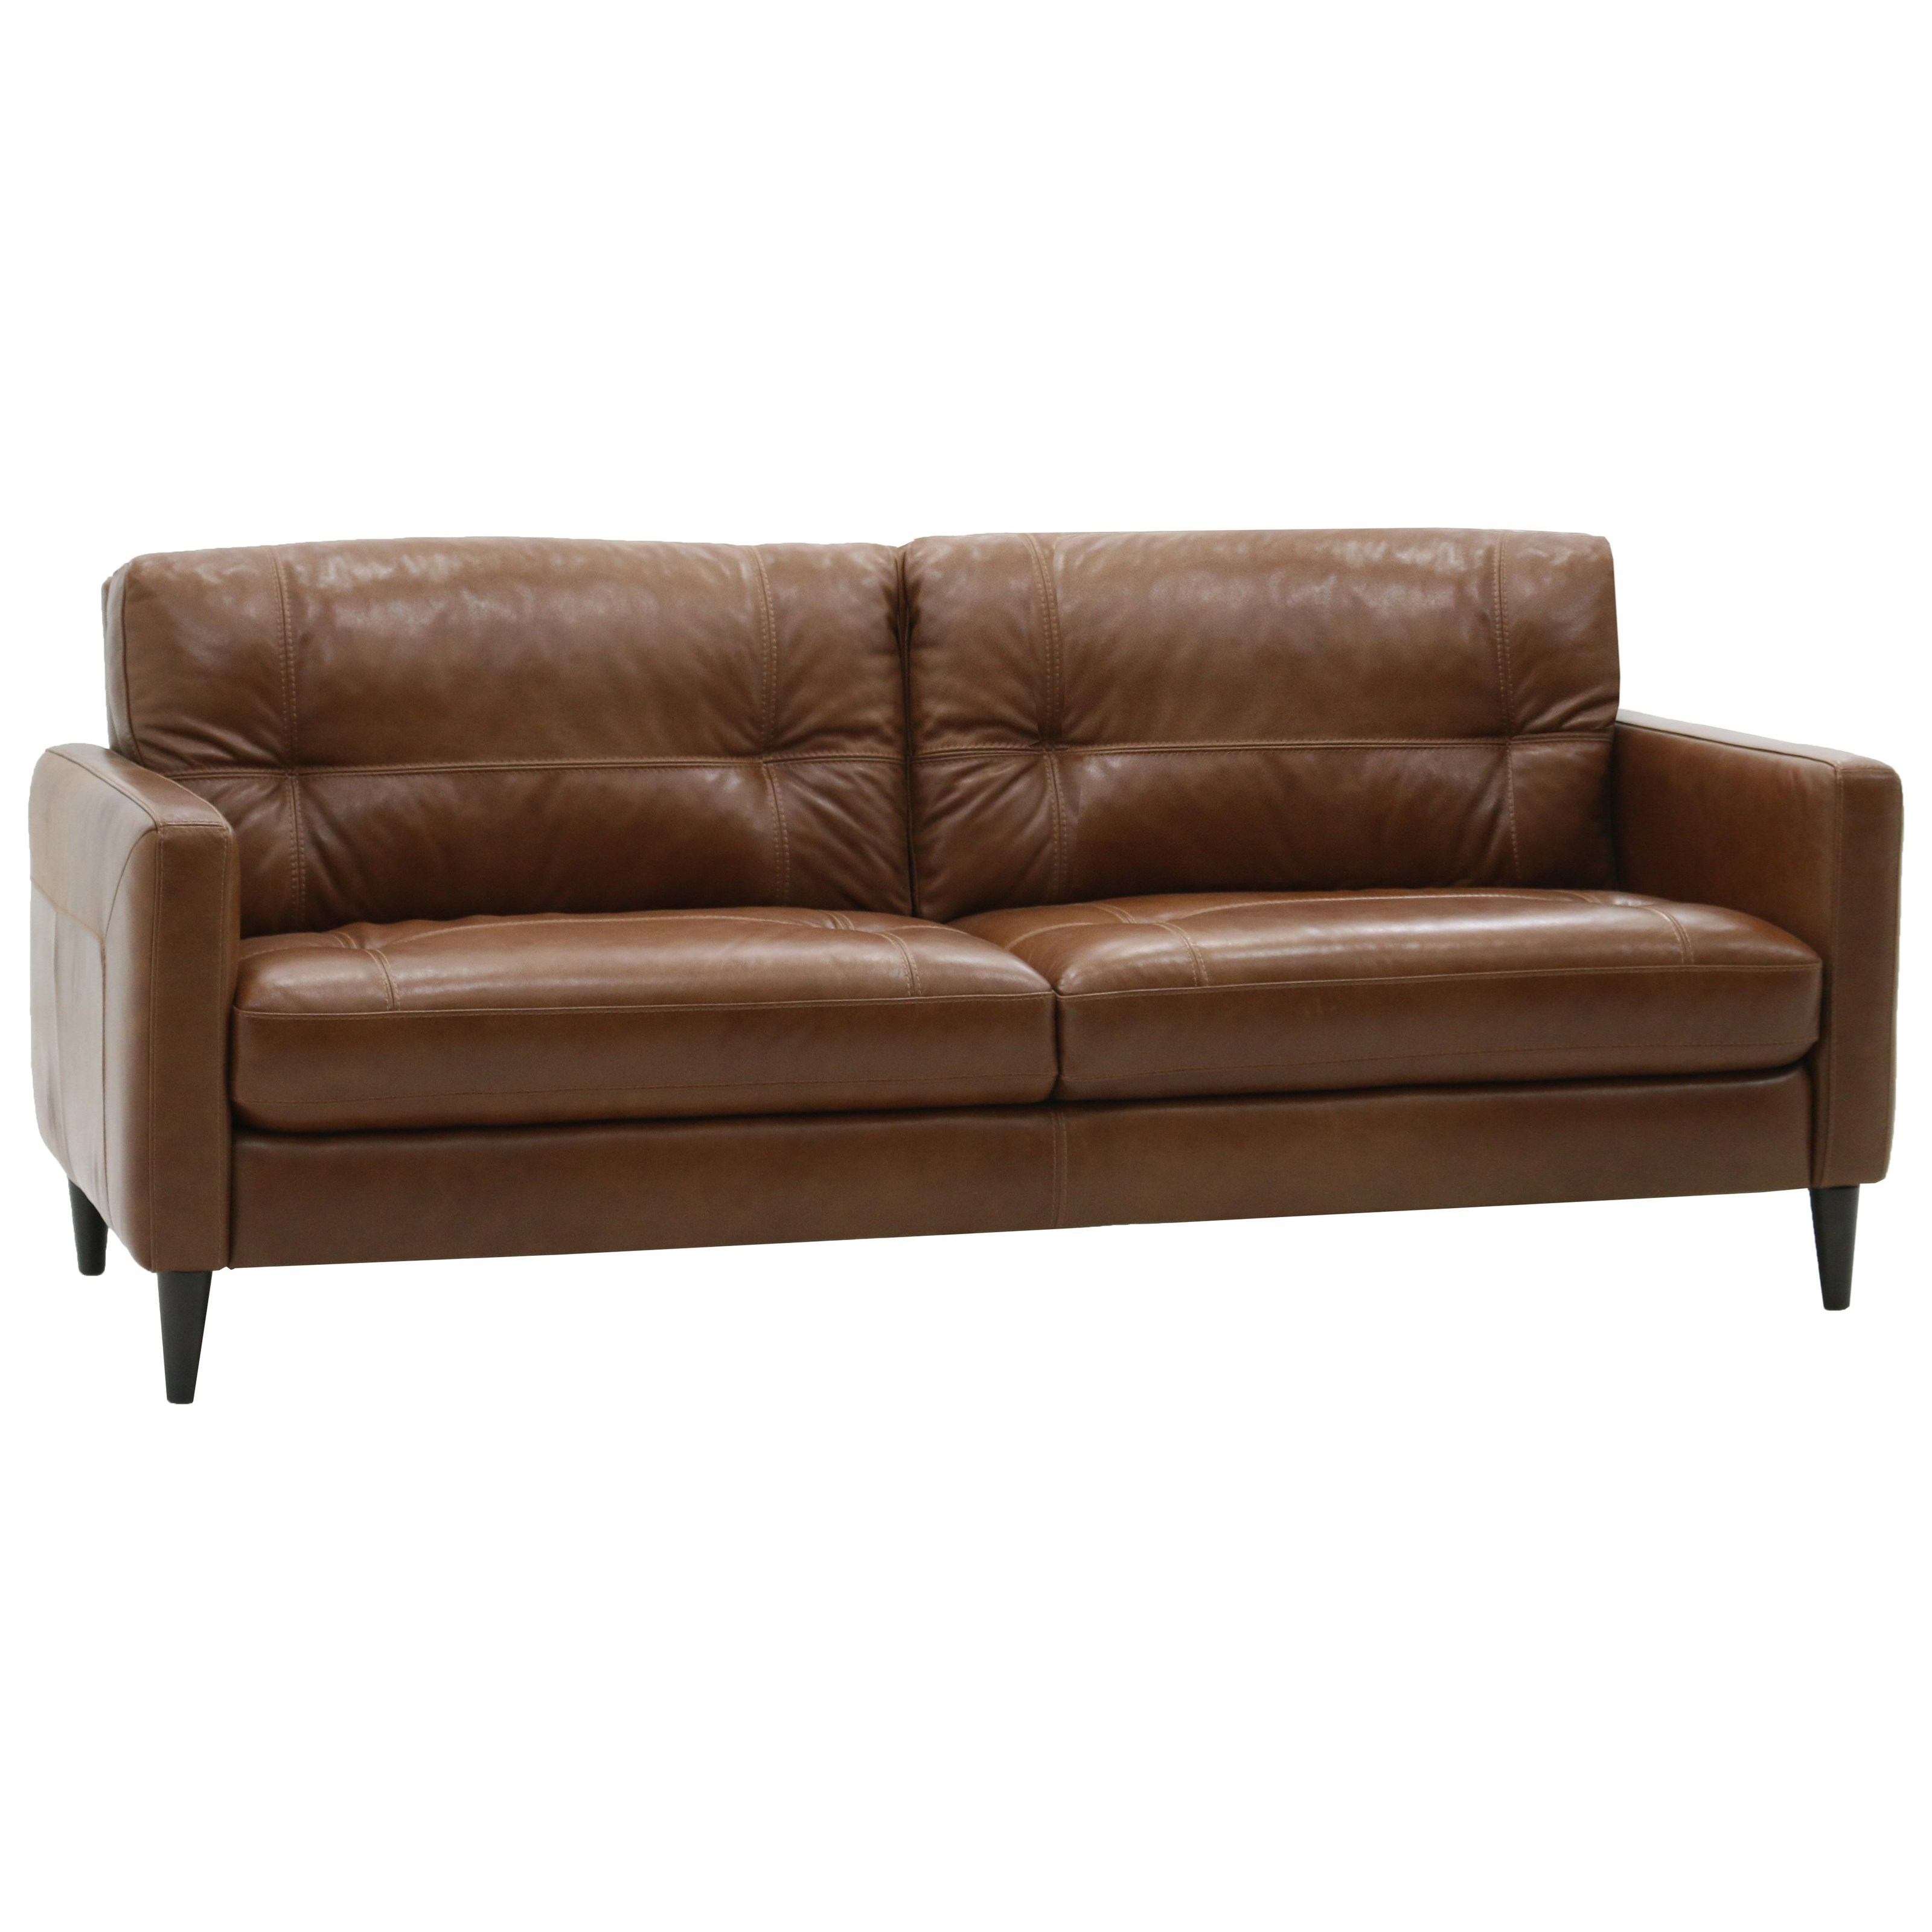 leather sofa washington dc chaise sectional sleeper belfort select gavin mid century modern with track